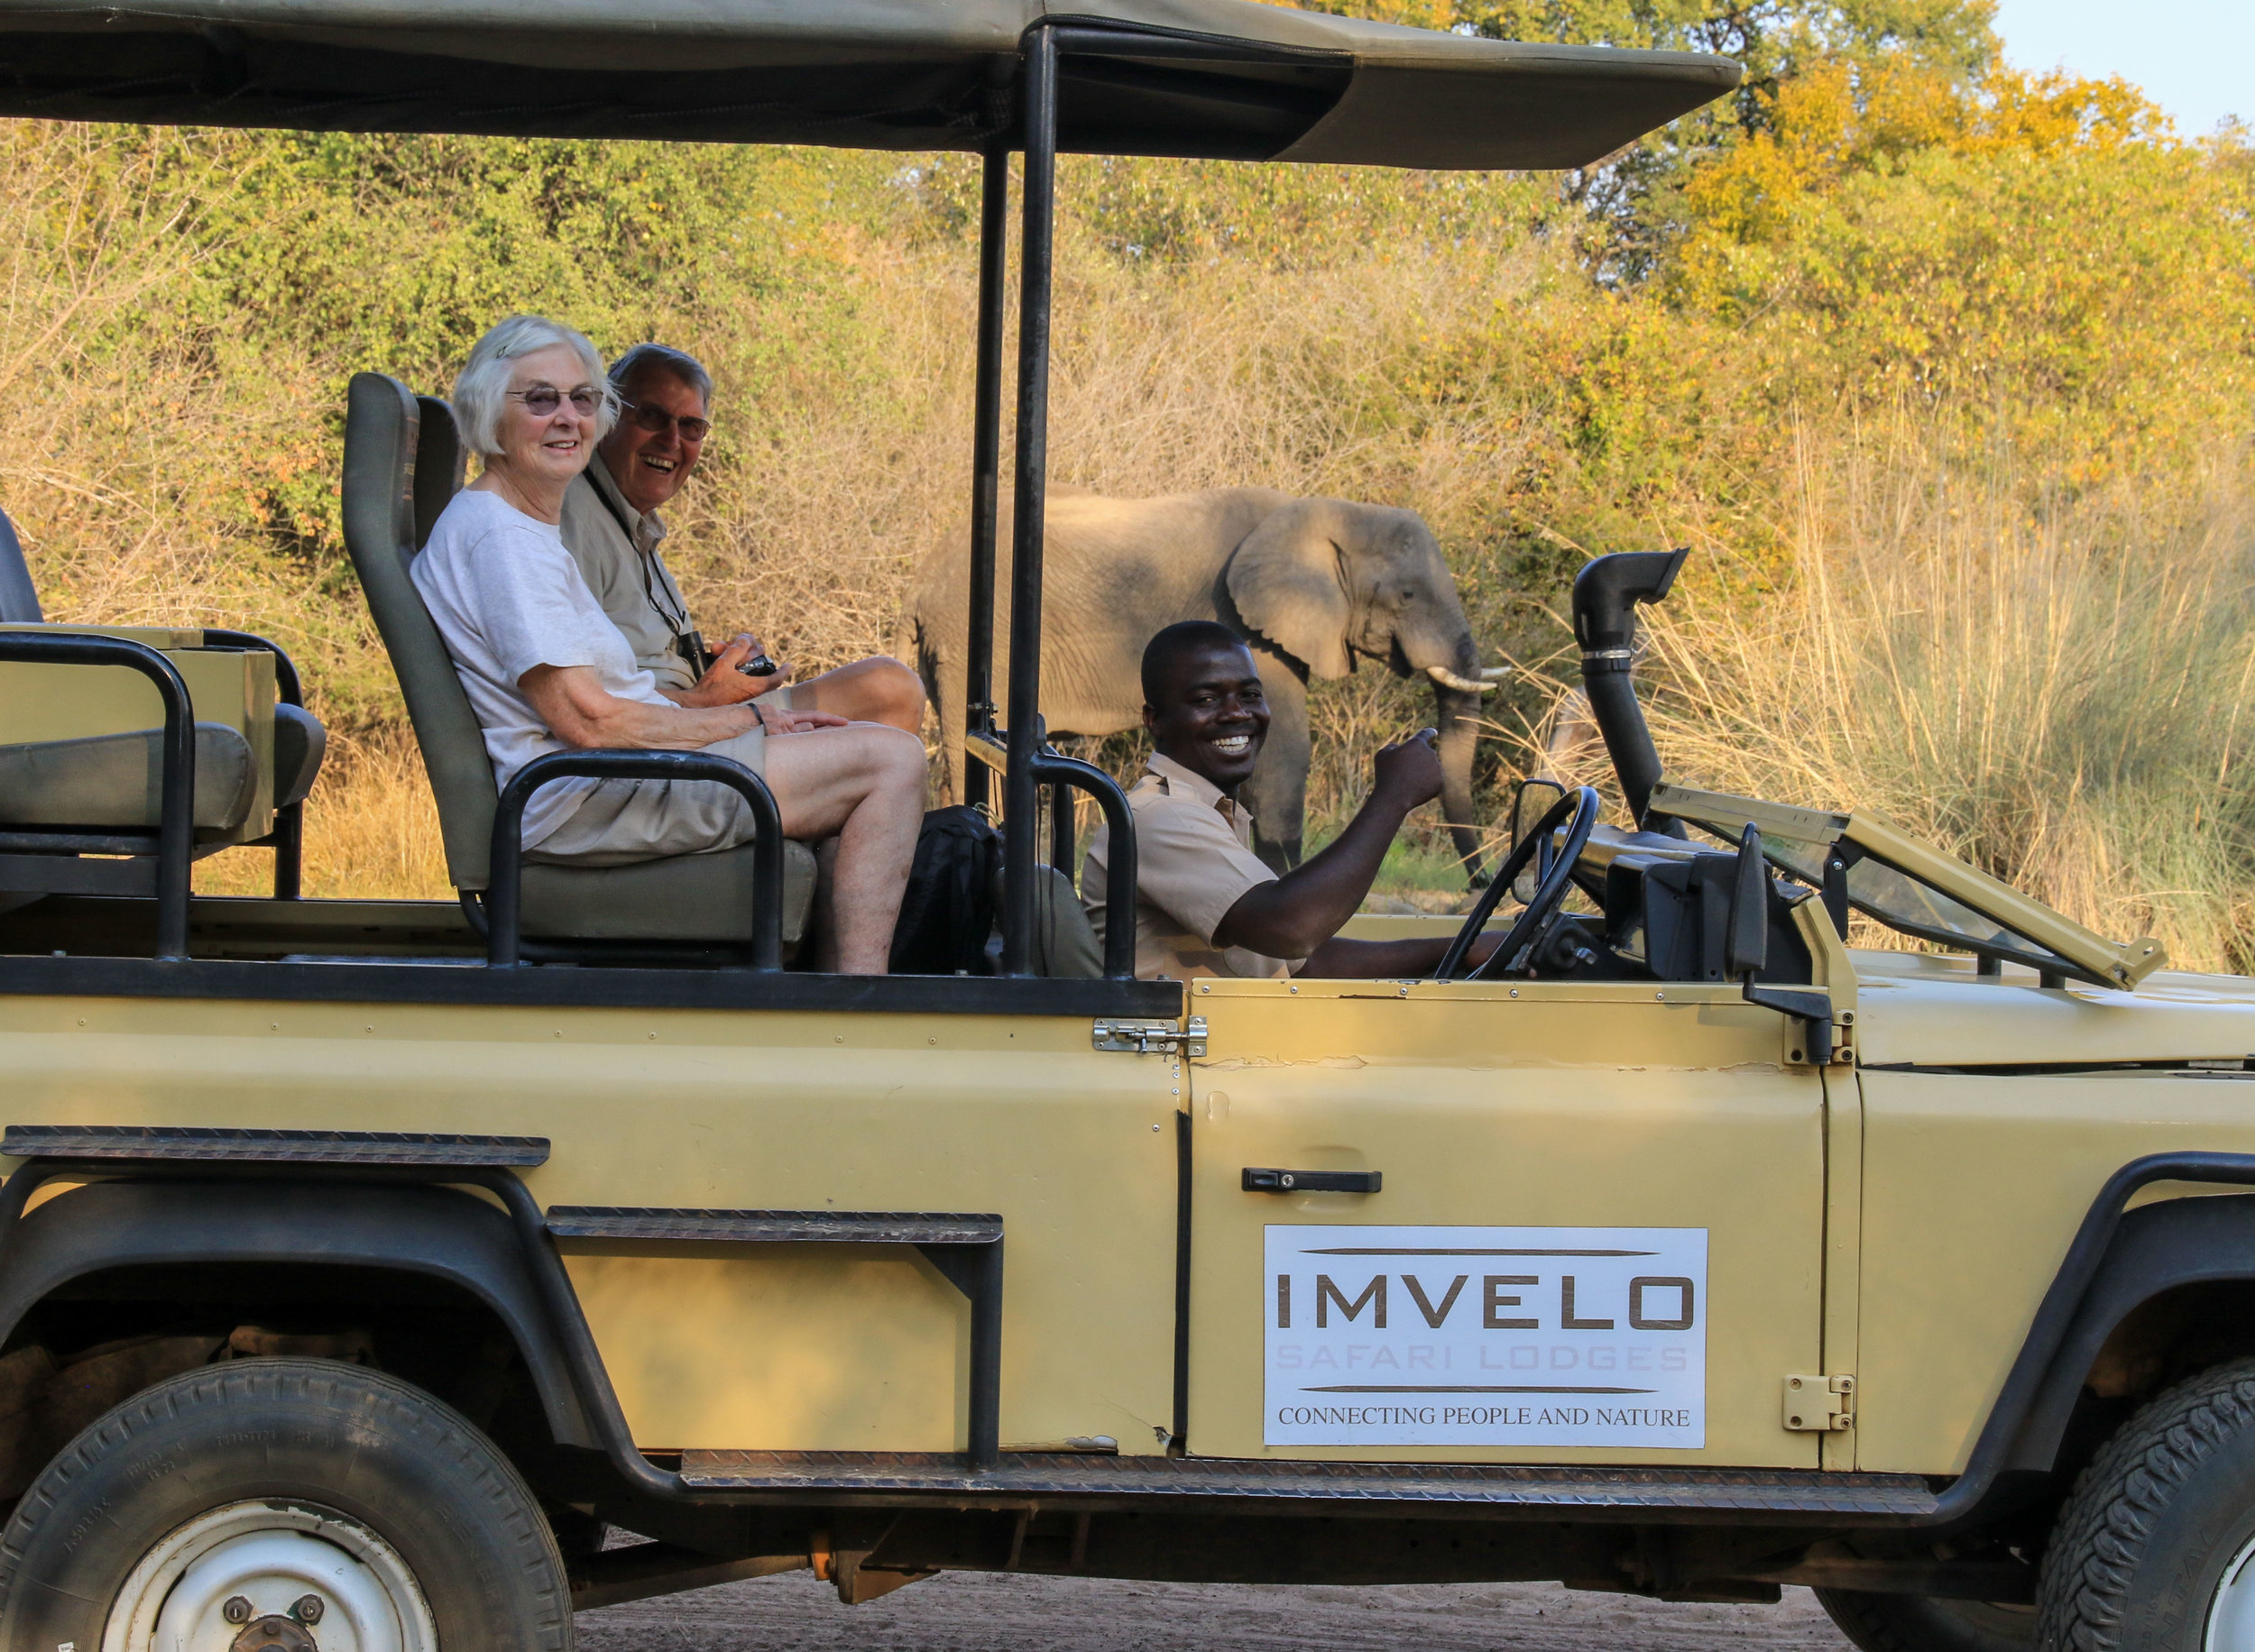 65 - Imvelo Safari Lodges - Zambesi Sands - Fred and Muriel Shaw with Stanley Ndhlovu.jpg